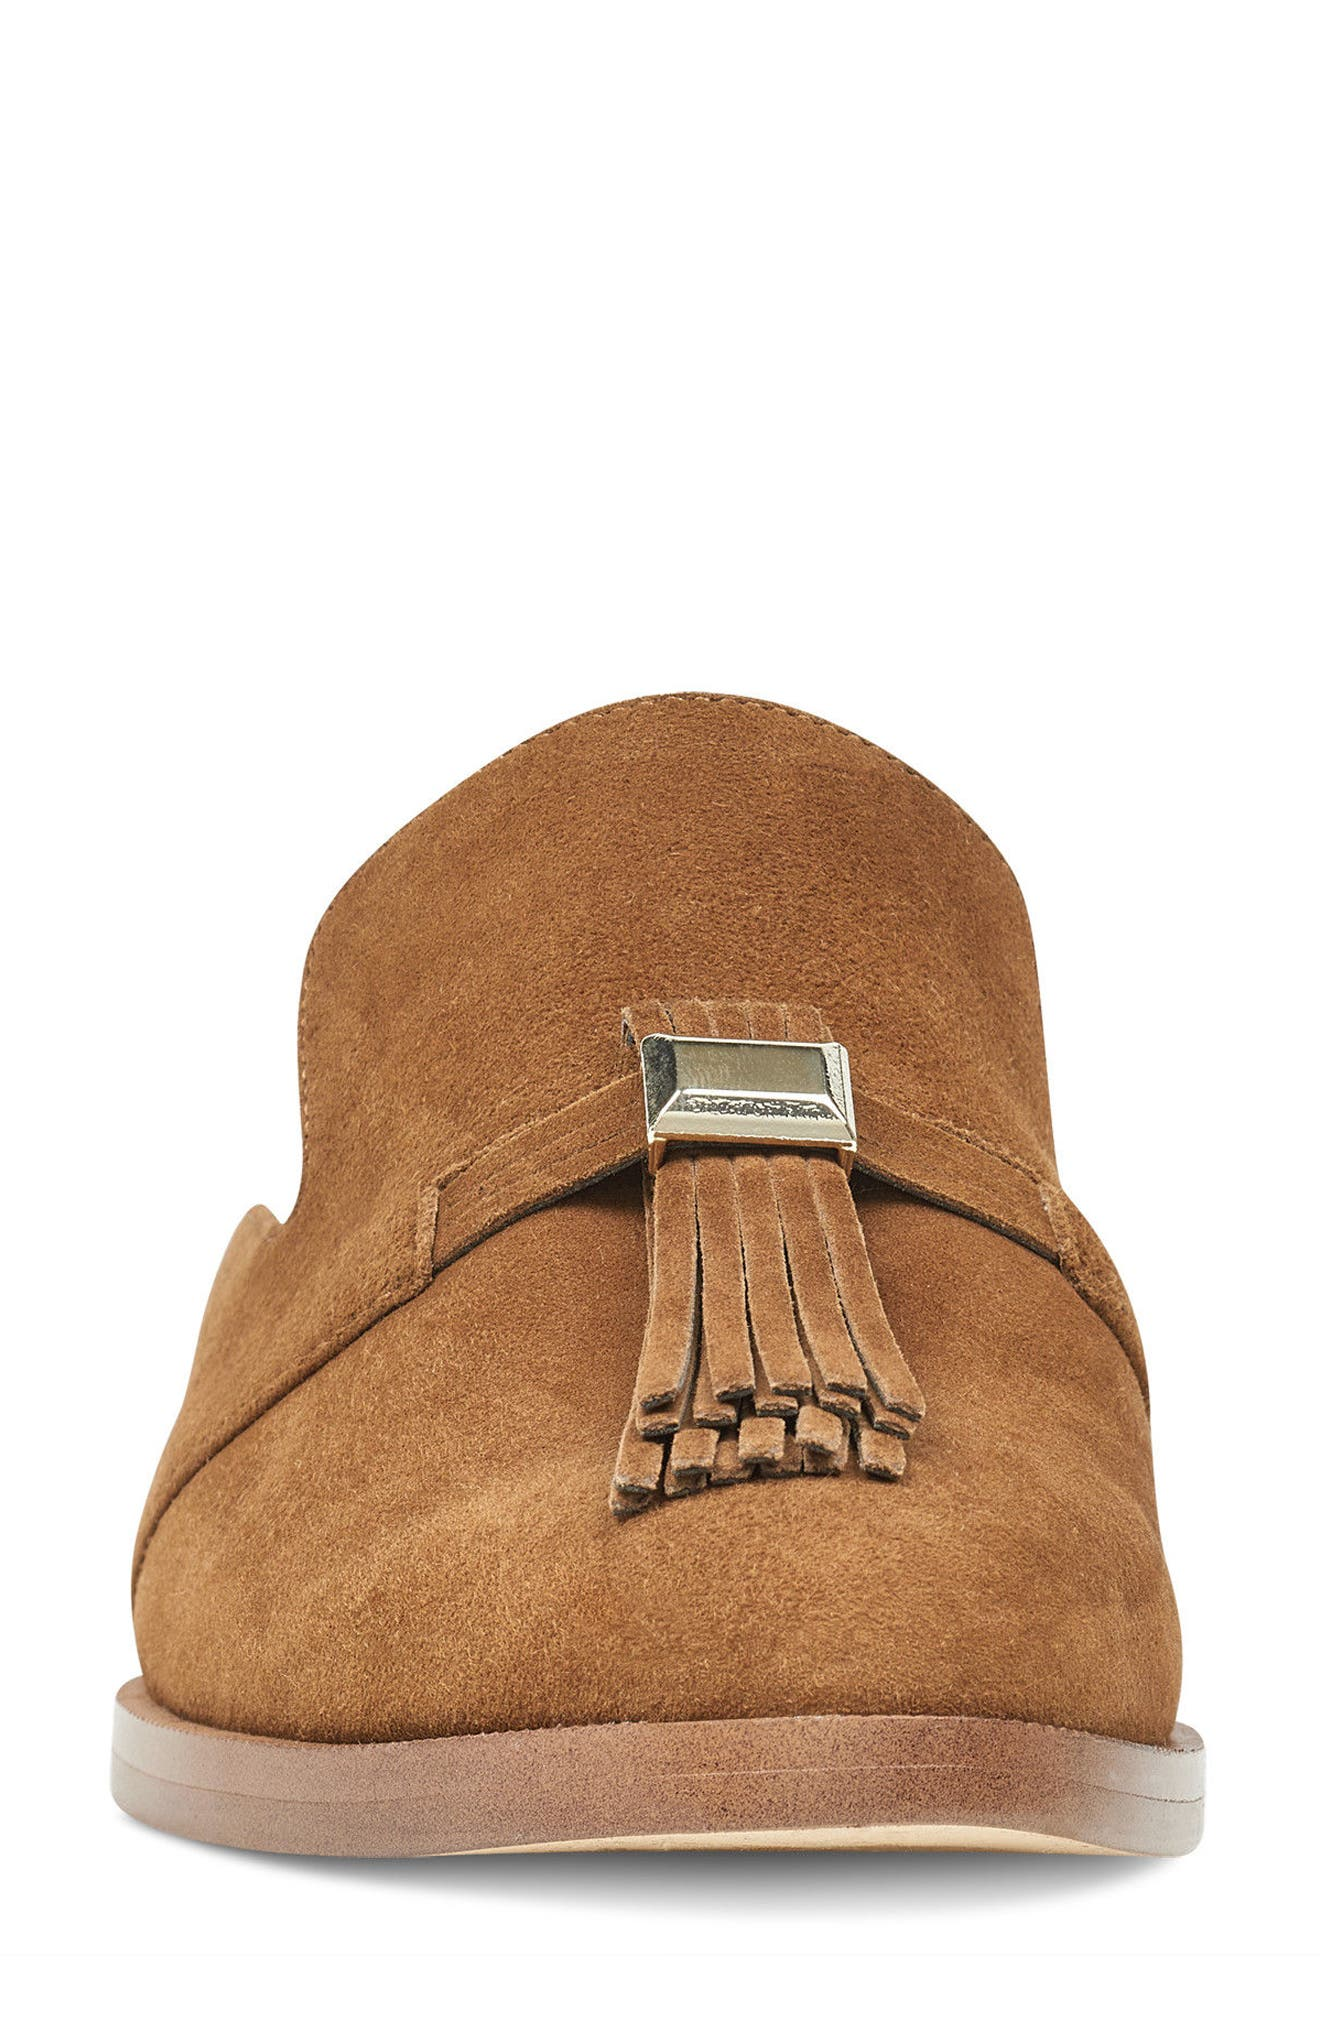 Huebart Loafer Mule,                             Alternate thumbnail 4, color,                             Brown Suede